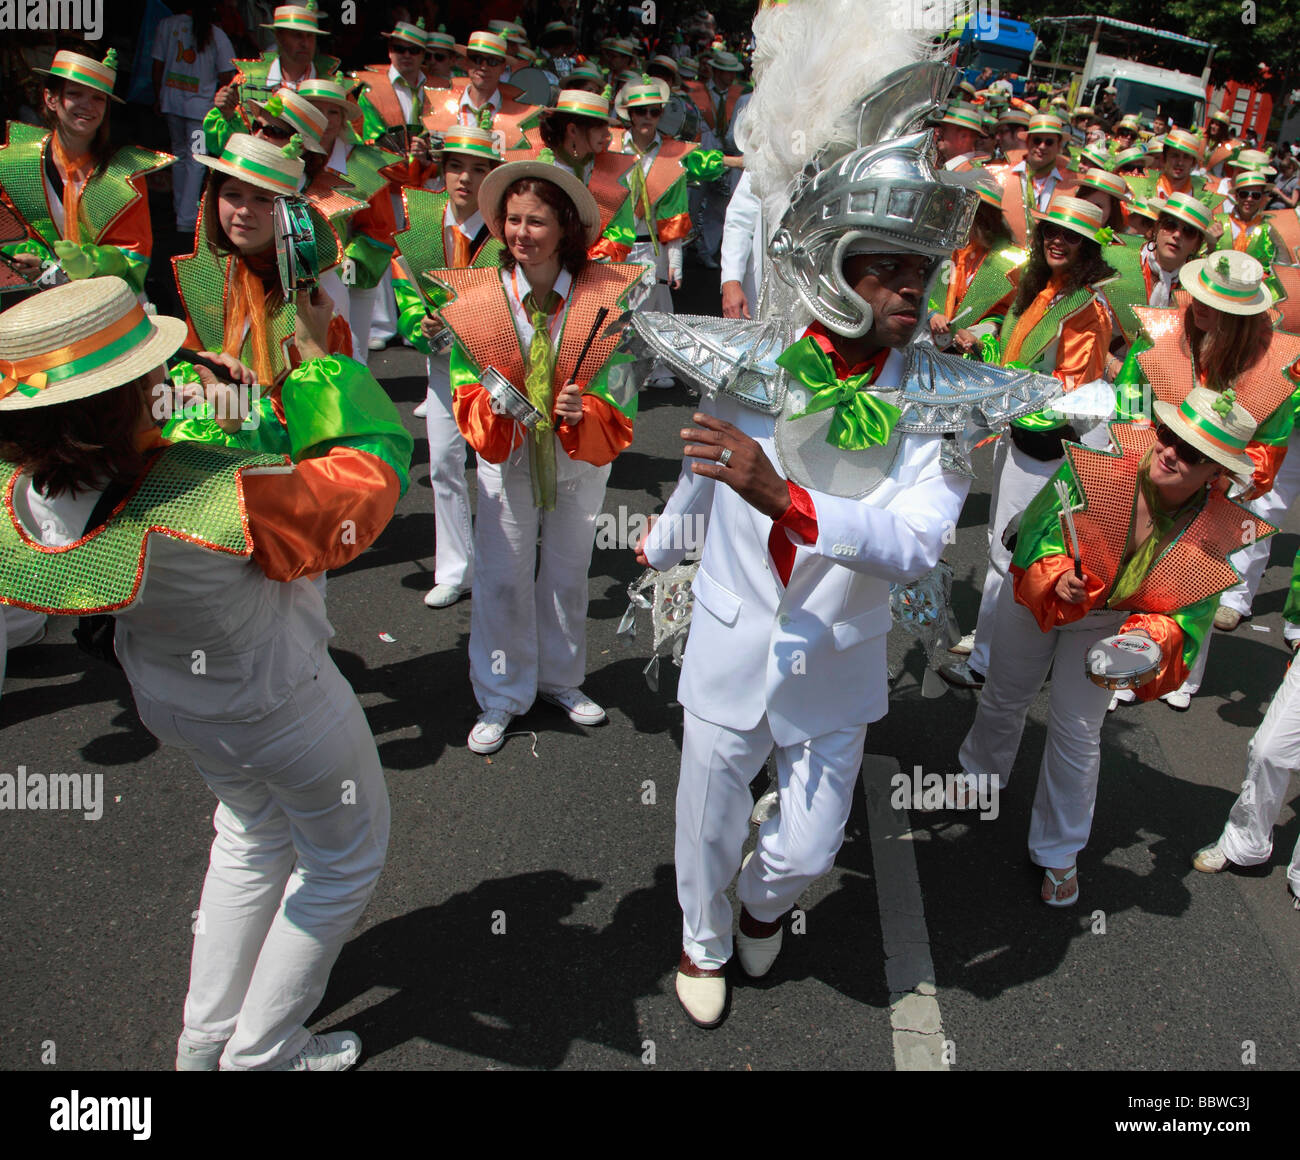 Allemagne Berlin Carnaval des Cultures marching percussion band Photo Stock